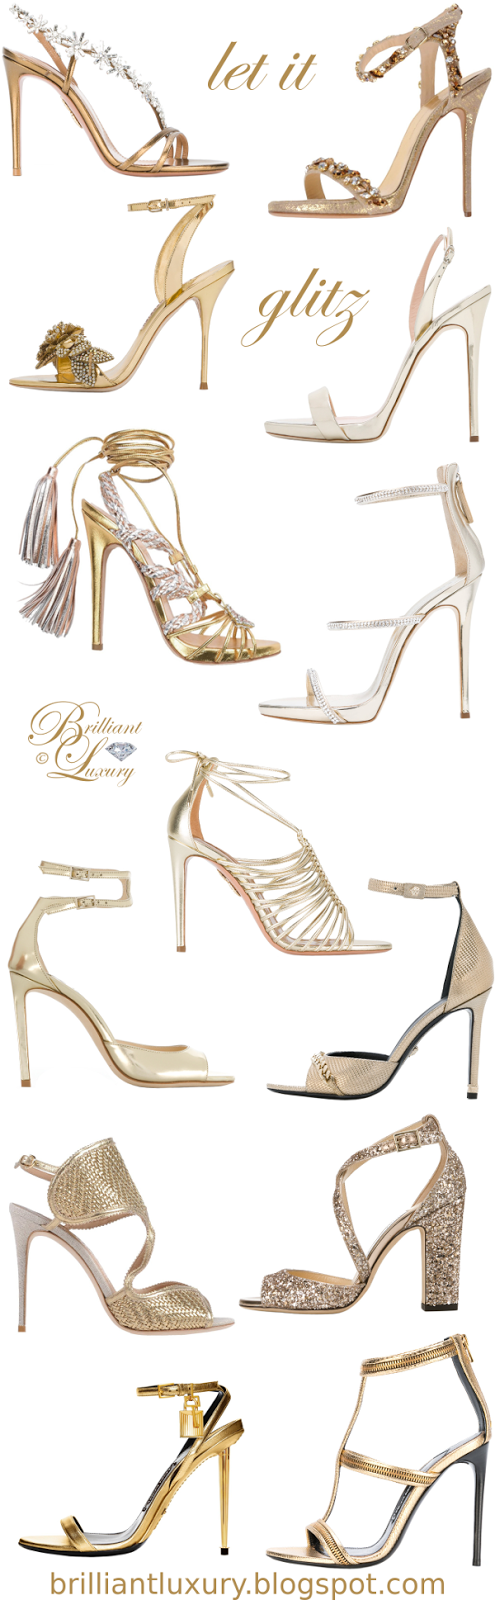 Brilliant Luxury ♦ let it glitz ~ sandals in GOLD